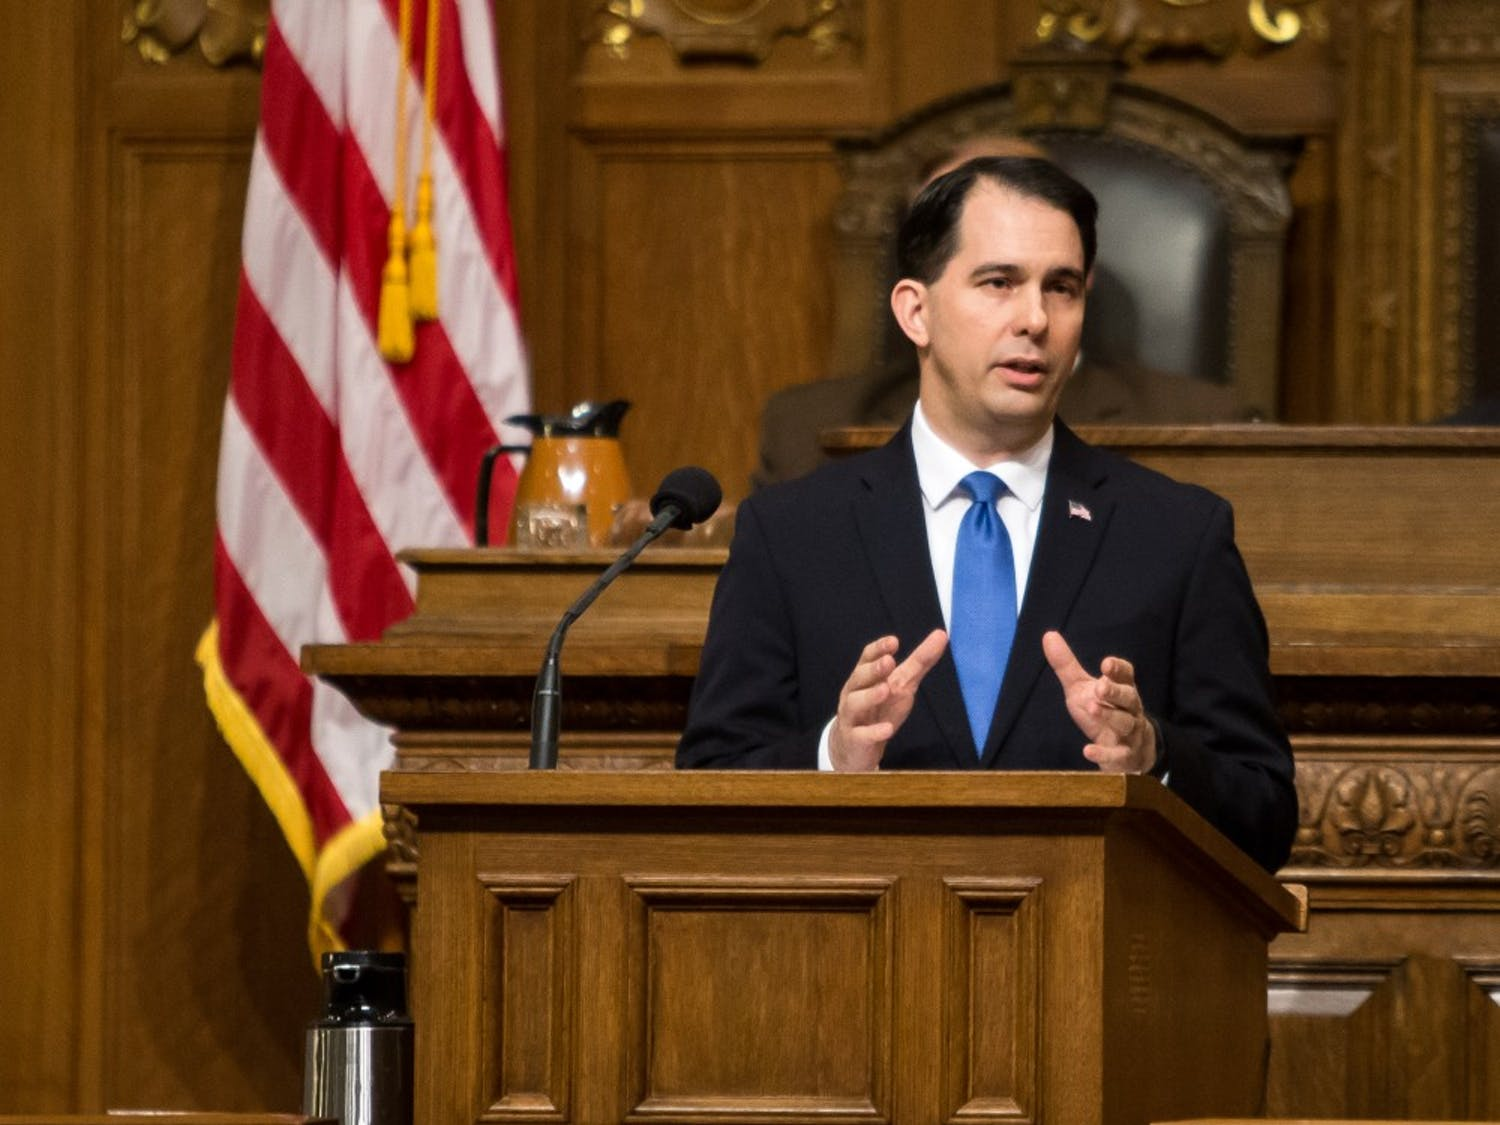 Gov. Scott Walker signed a pair of bills into law Thursday cutting funding for Planned Parenthood by roughly $8 million.